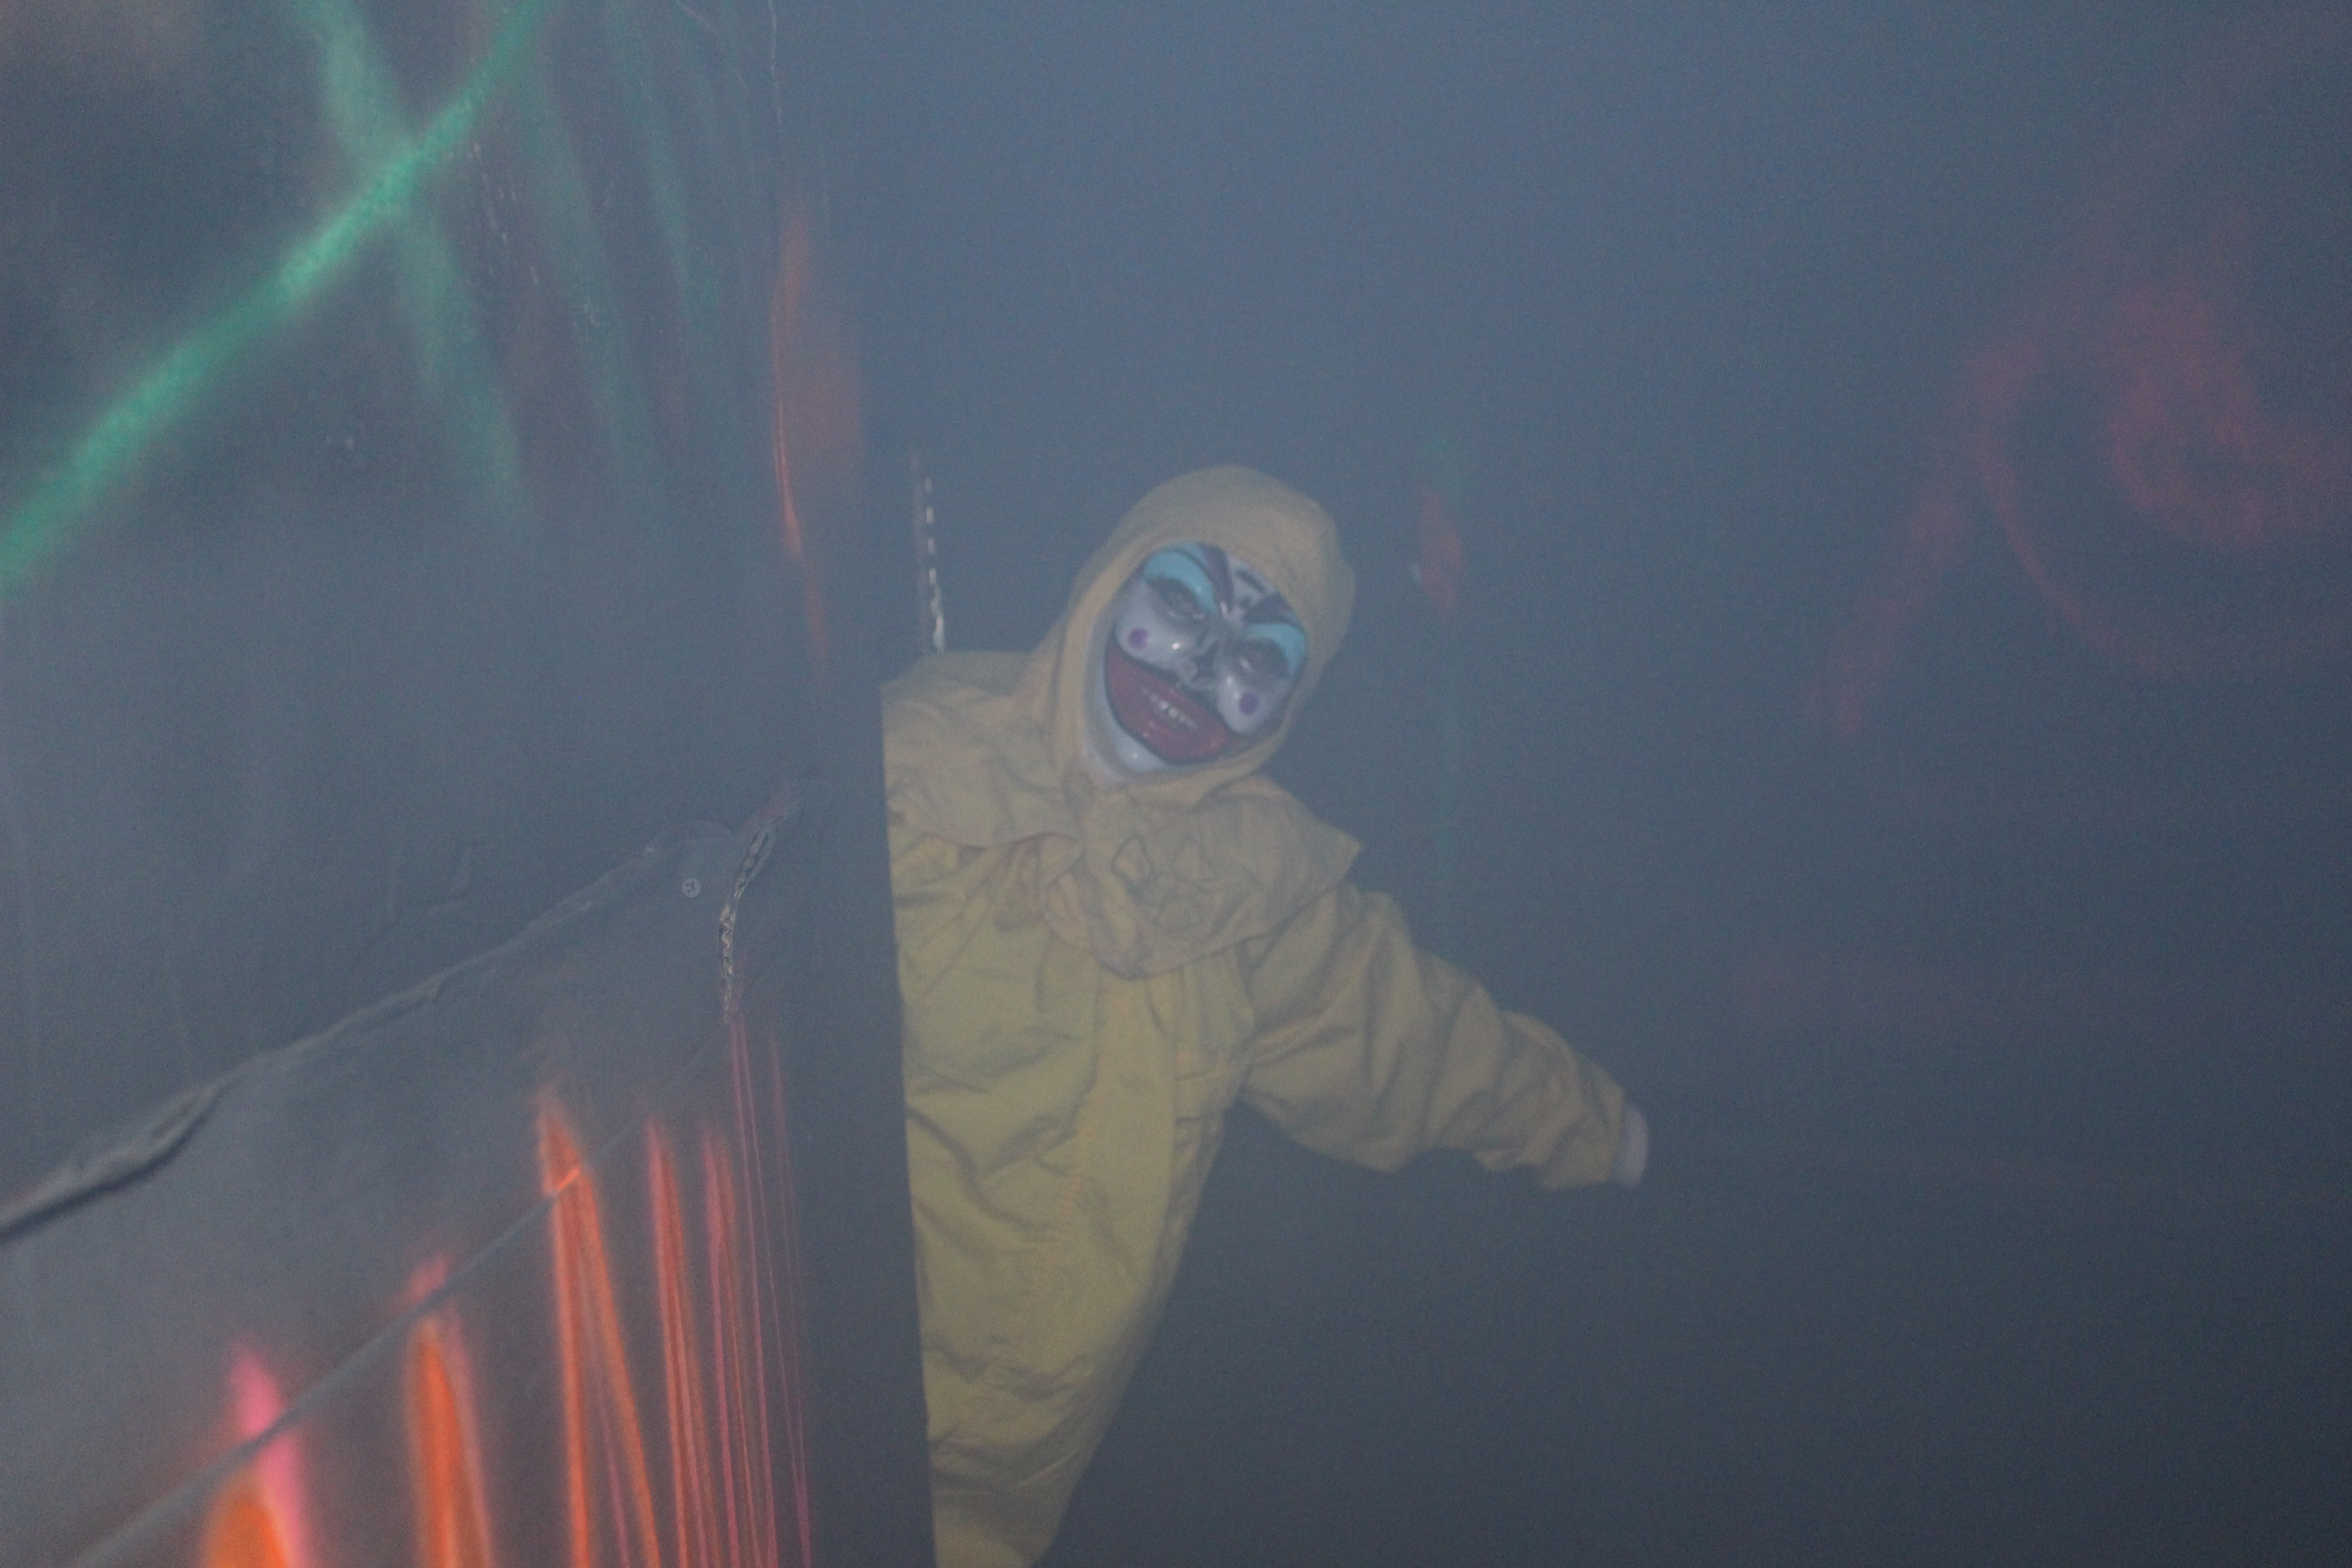 A creepy clown spooks guests at a haunted house promoting awareness for dysautonomia, St. George, Utah, Oct. 29, 2016 | Photo by Joseph Witham, St. George News